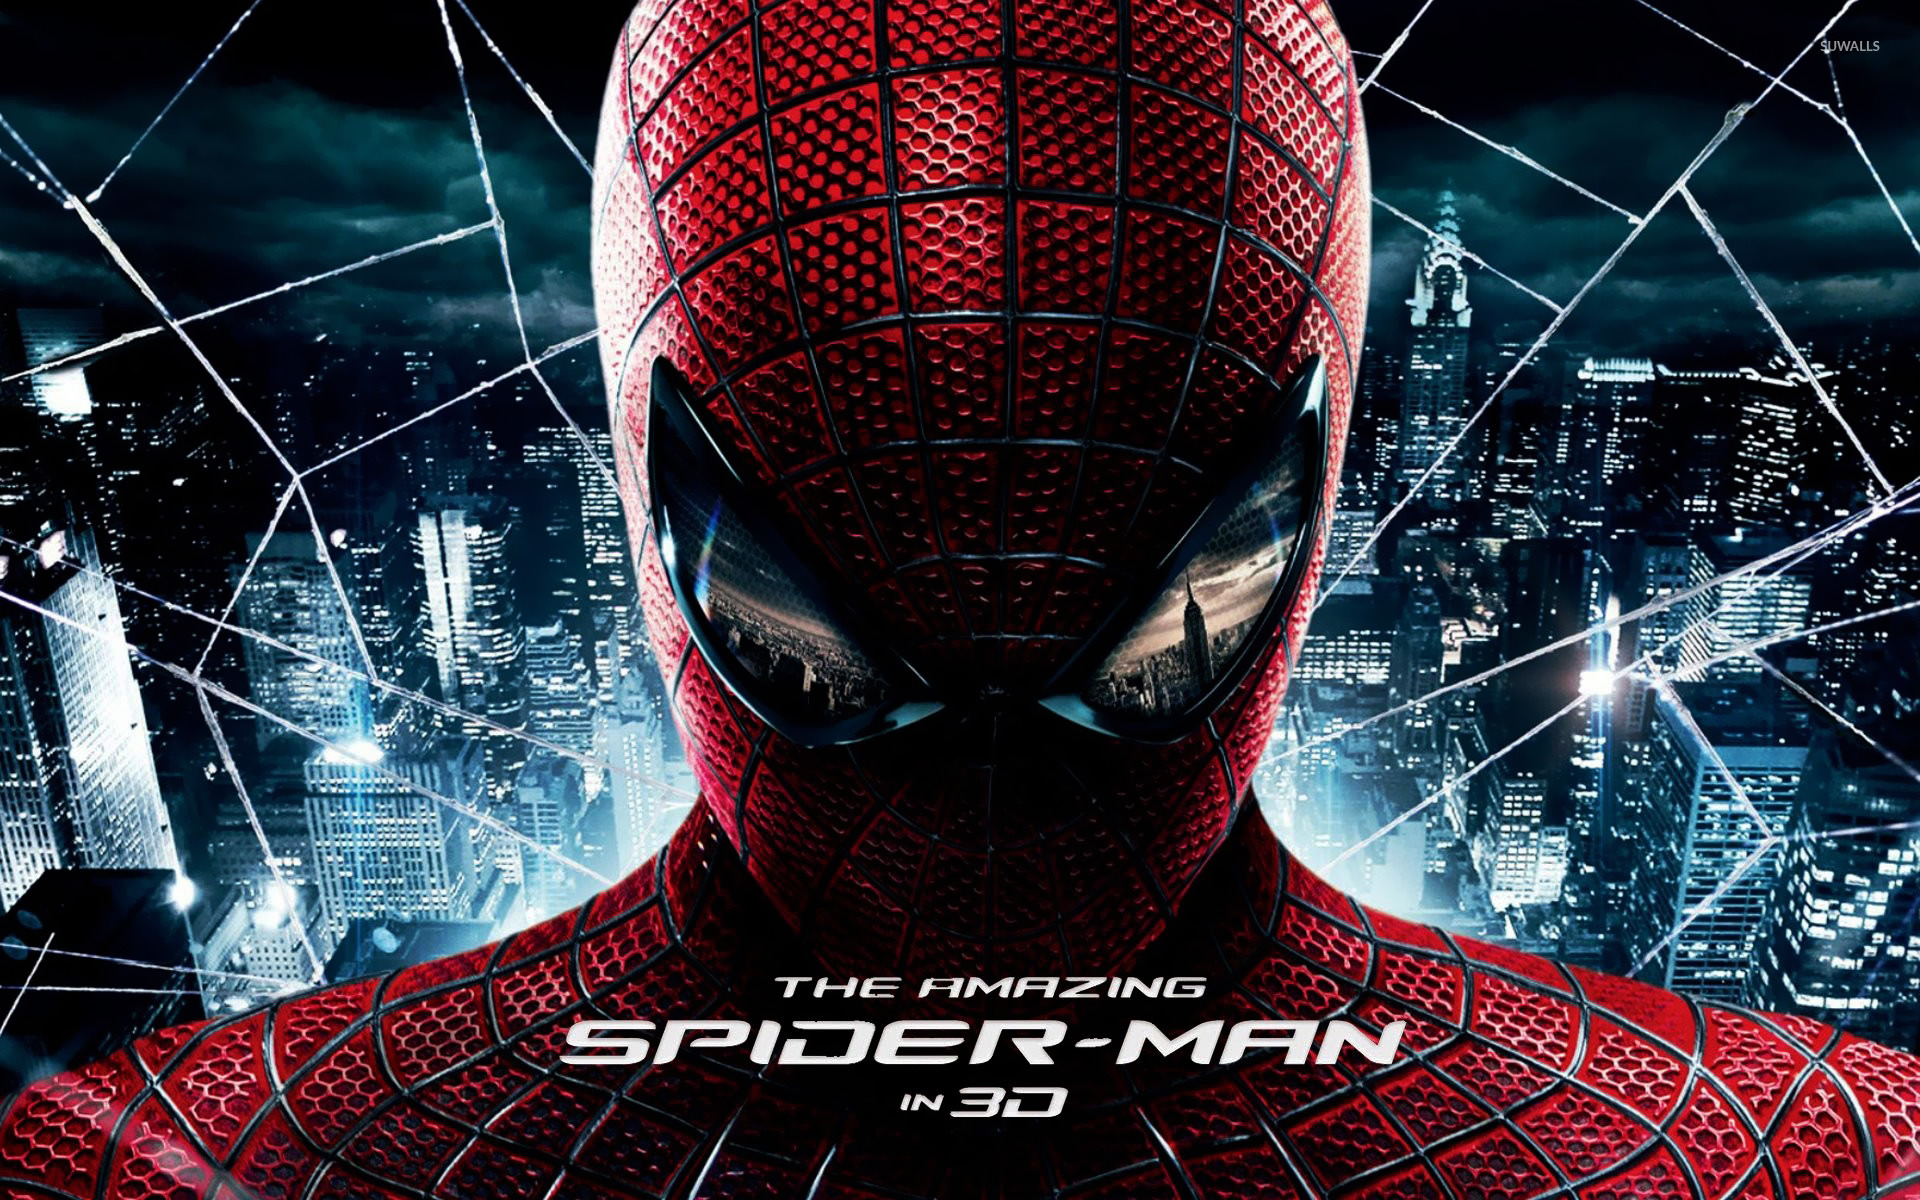 The Amazing Spider Man wallpaper   Movie wallpapers   12989 1920x1200